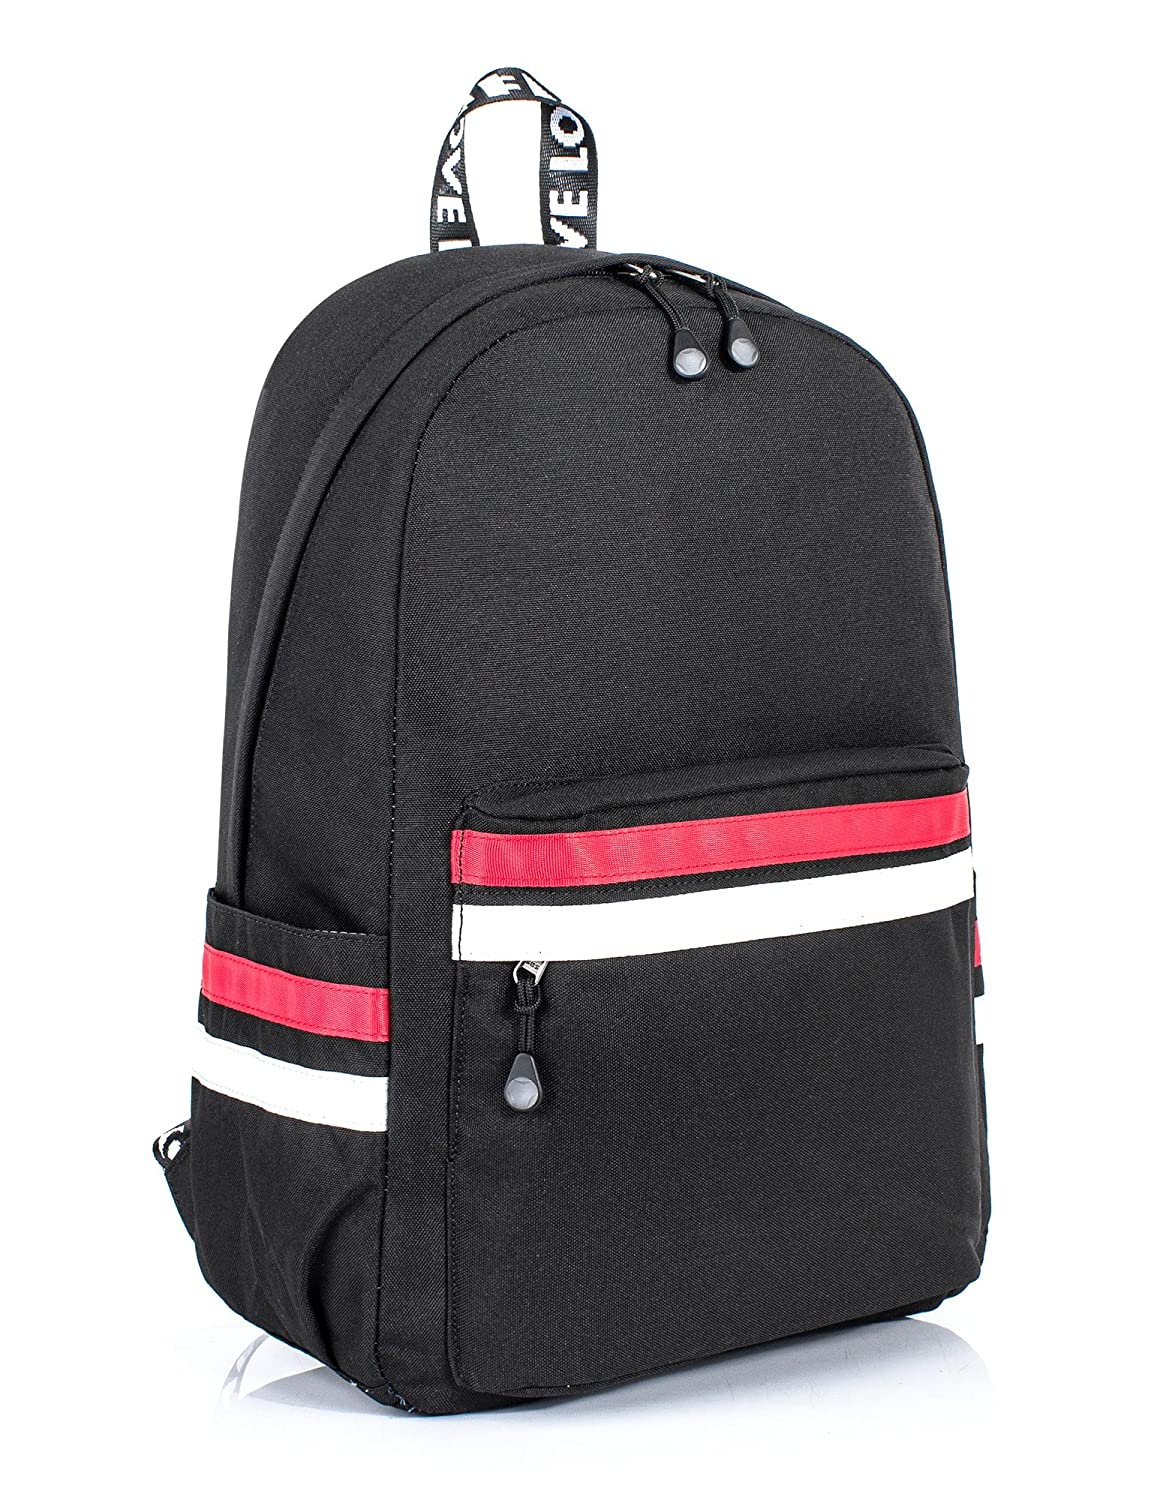 Amazon.com  Leaper Casual Laptop Backpack School Bag Shoulder Bag Travel  Daypack Handbag  Clothing 433f73e72d3e3